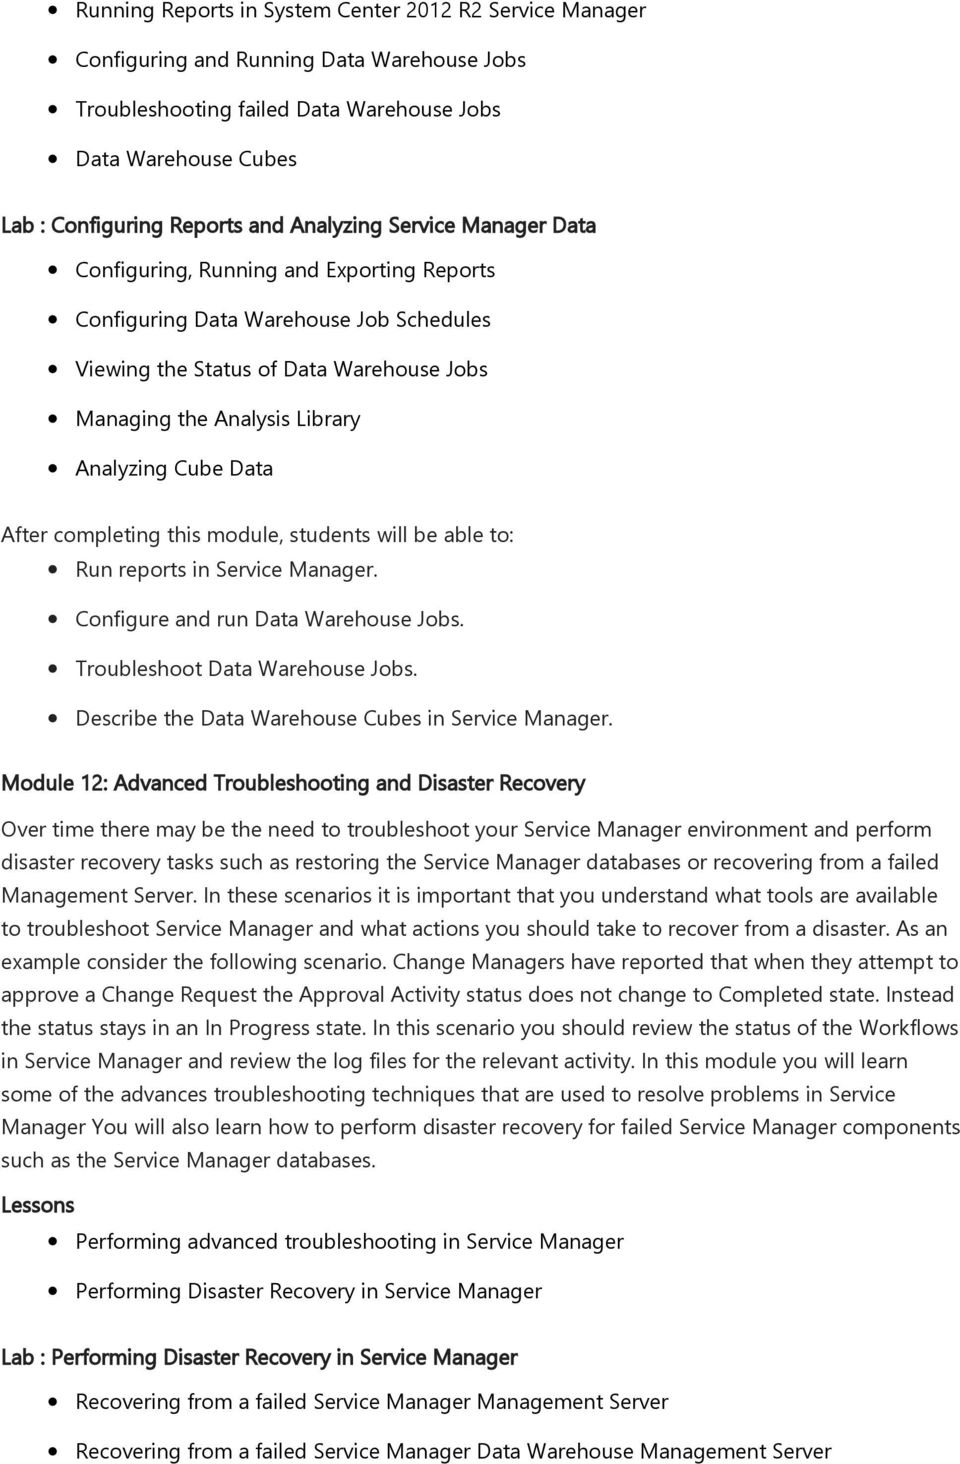 Cube Data Run reports in Service Manager. Configure and run Data Warehouse Jobs. Troubleshoot Data Warehouse Jobs. Describe the Data Warehouse Cubes in Service Manager.